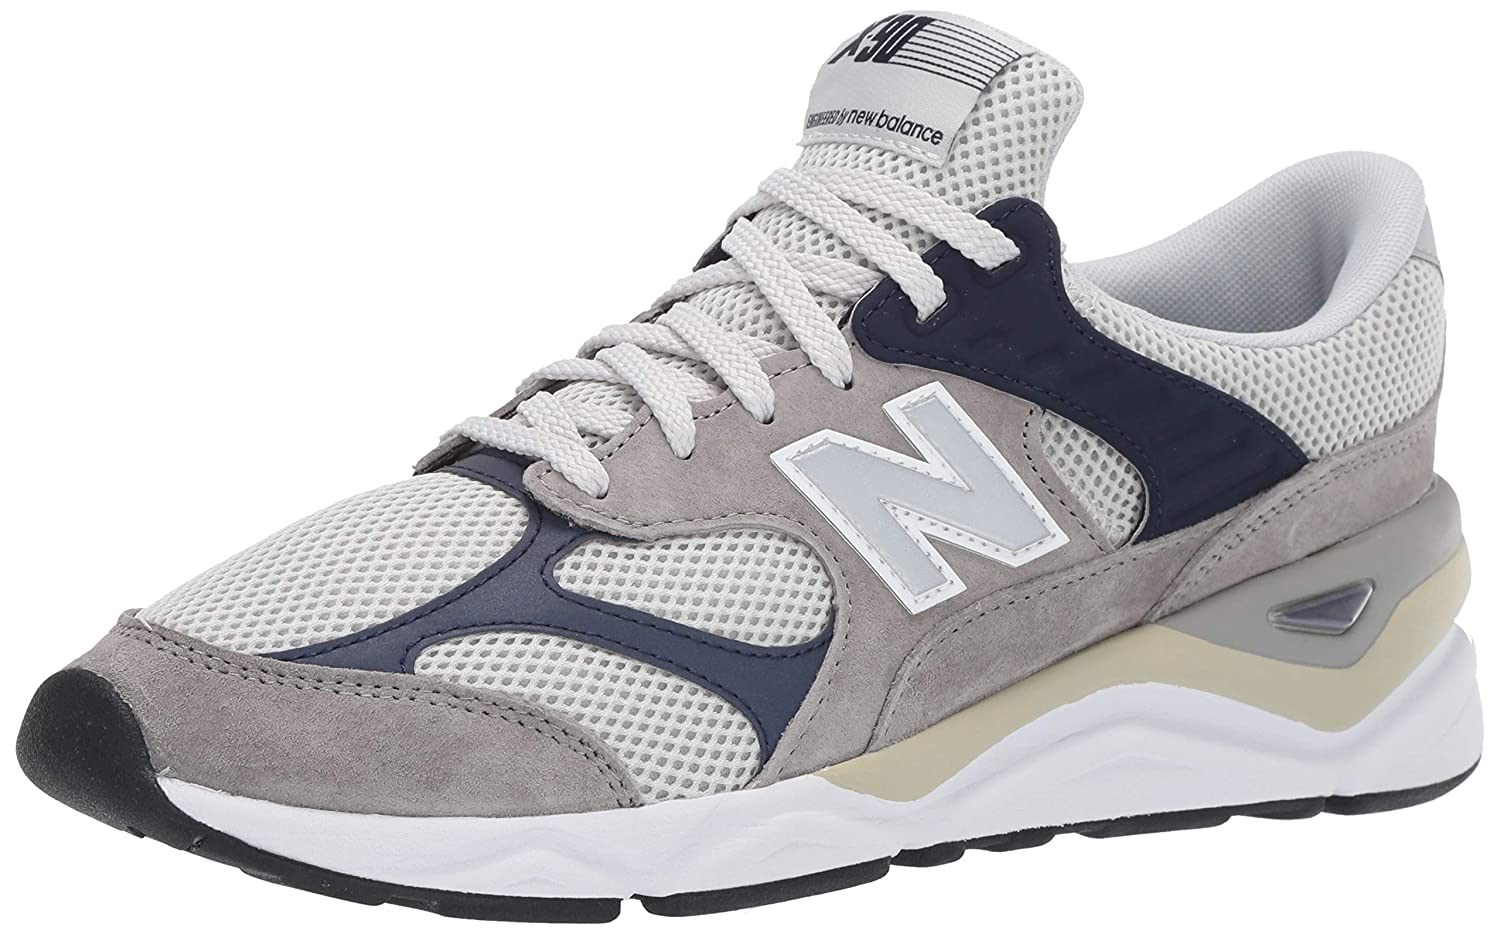 5949c8794d New Balance Men's X-90 Suede Trainers, Grey: Amazon.co.uk: Clothing